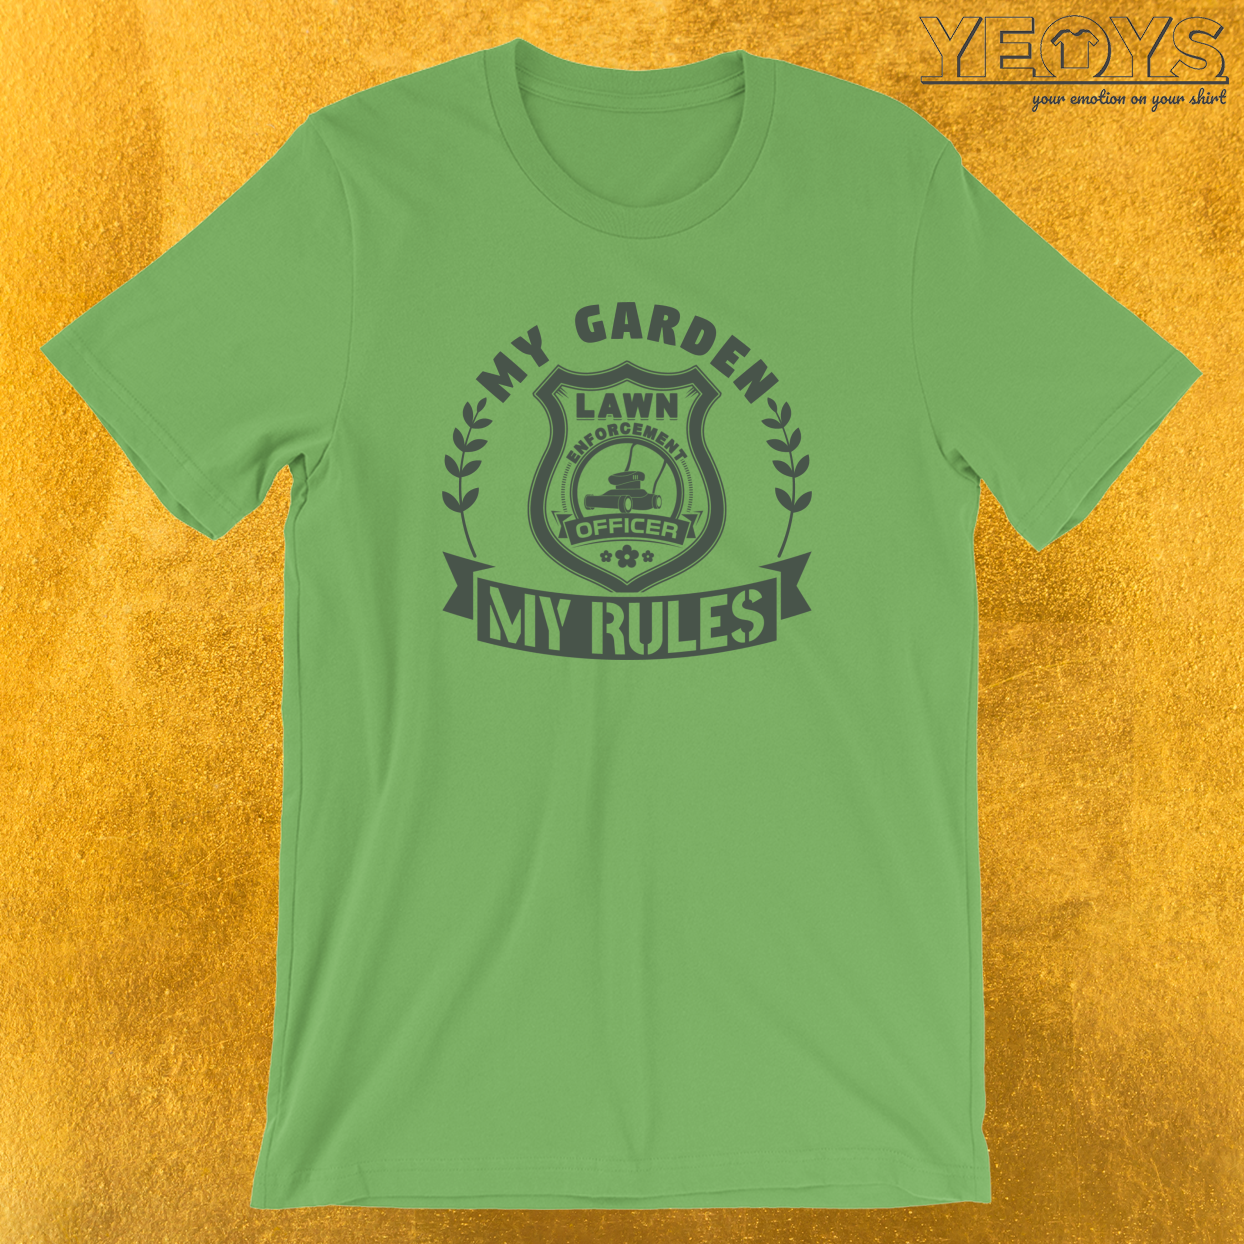 My Garden My Rules Lawn Enforcement Officer T-Shirt